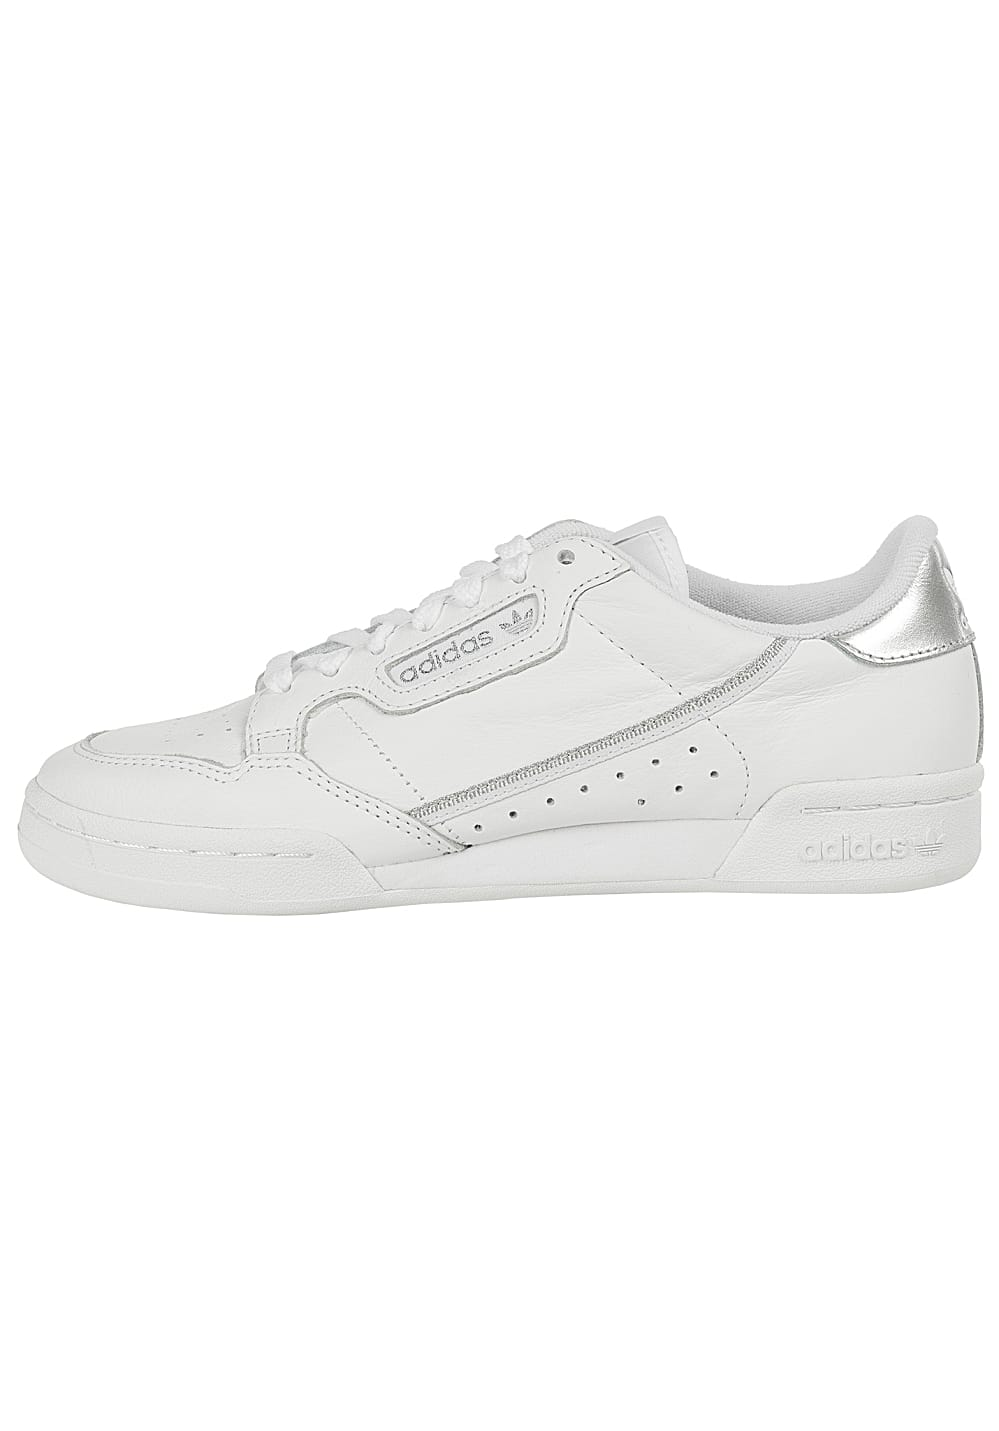 ADIDAS ORIGINALS Continental 80 Sneakers for Women White